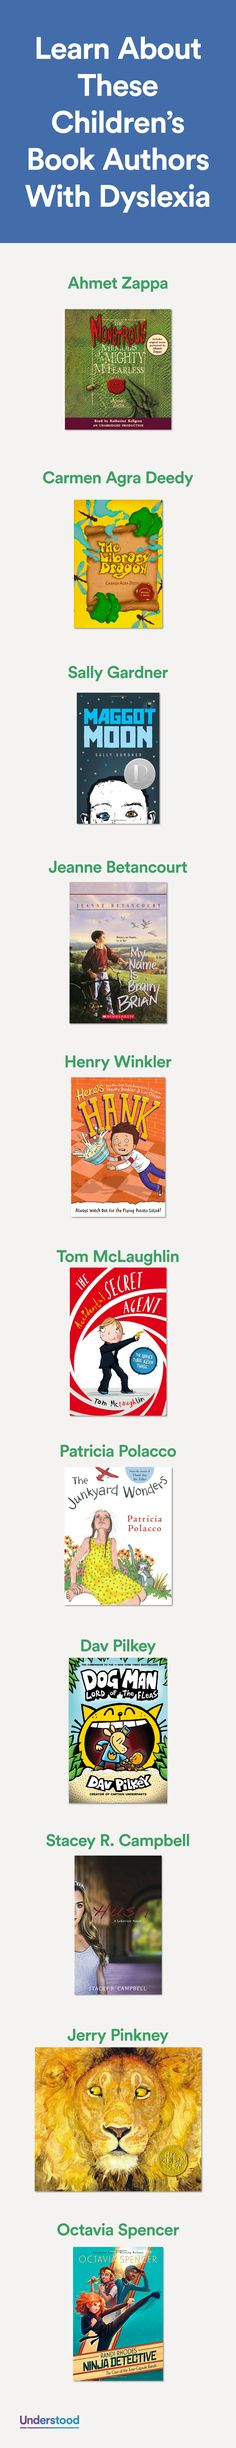 Findingcharacters to relate tocan help kids withdyslexiaget excited about reading. They may also be drawn to books written by authors who, like them, struggle with reading. Here are 11 authors with dyslexia.